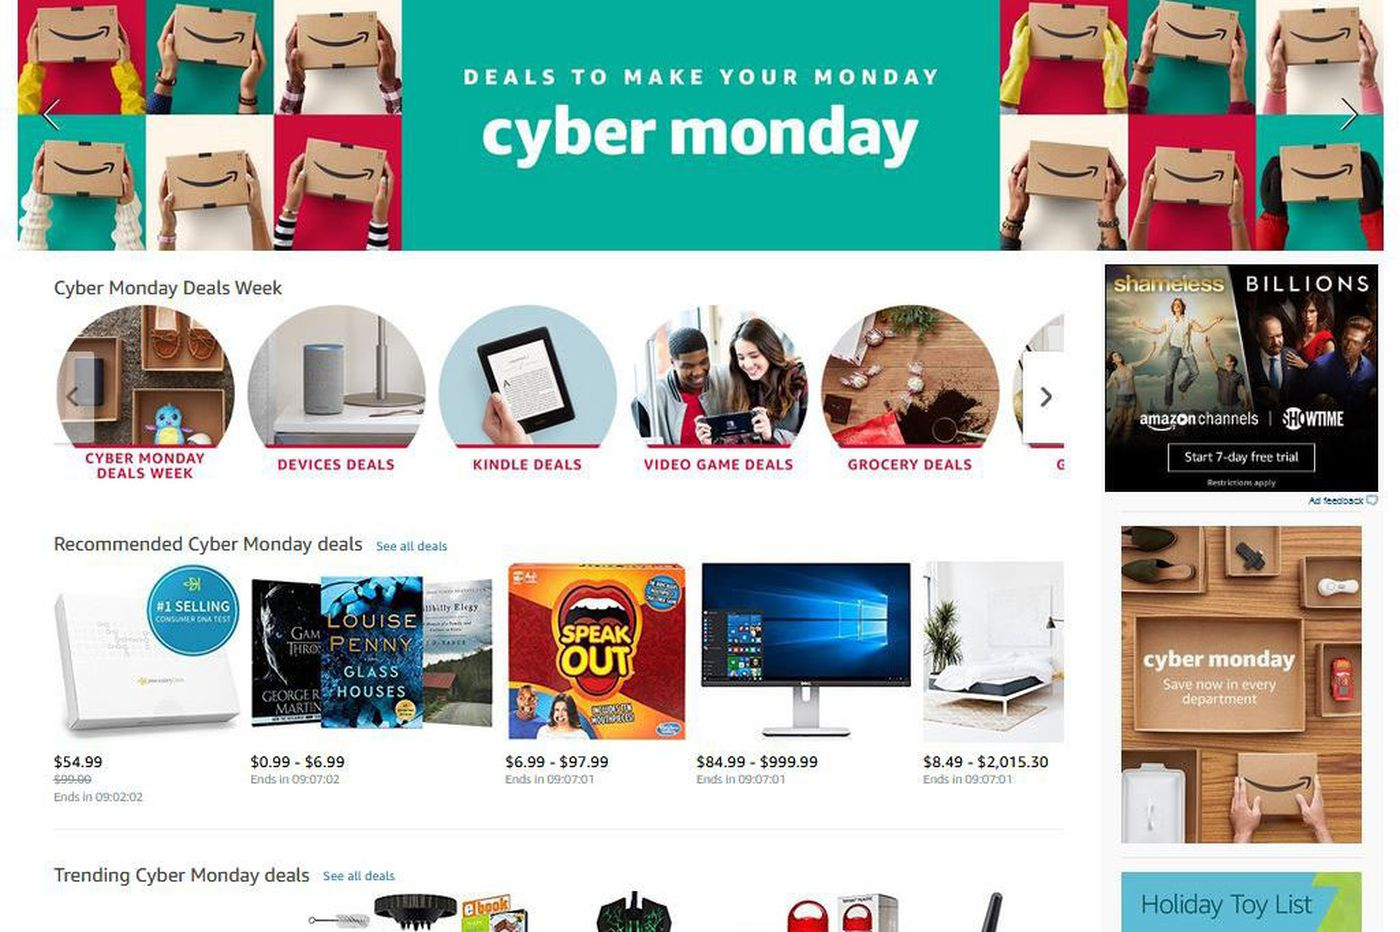 Cyber Monday, fueled by smartphones, sets an online sales record of $6.6 billion